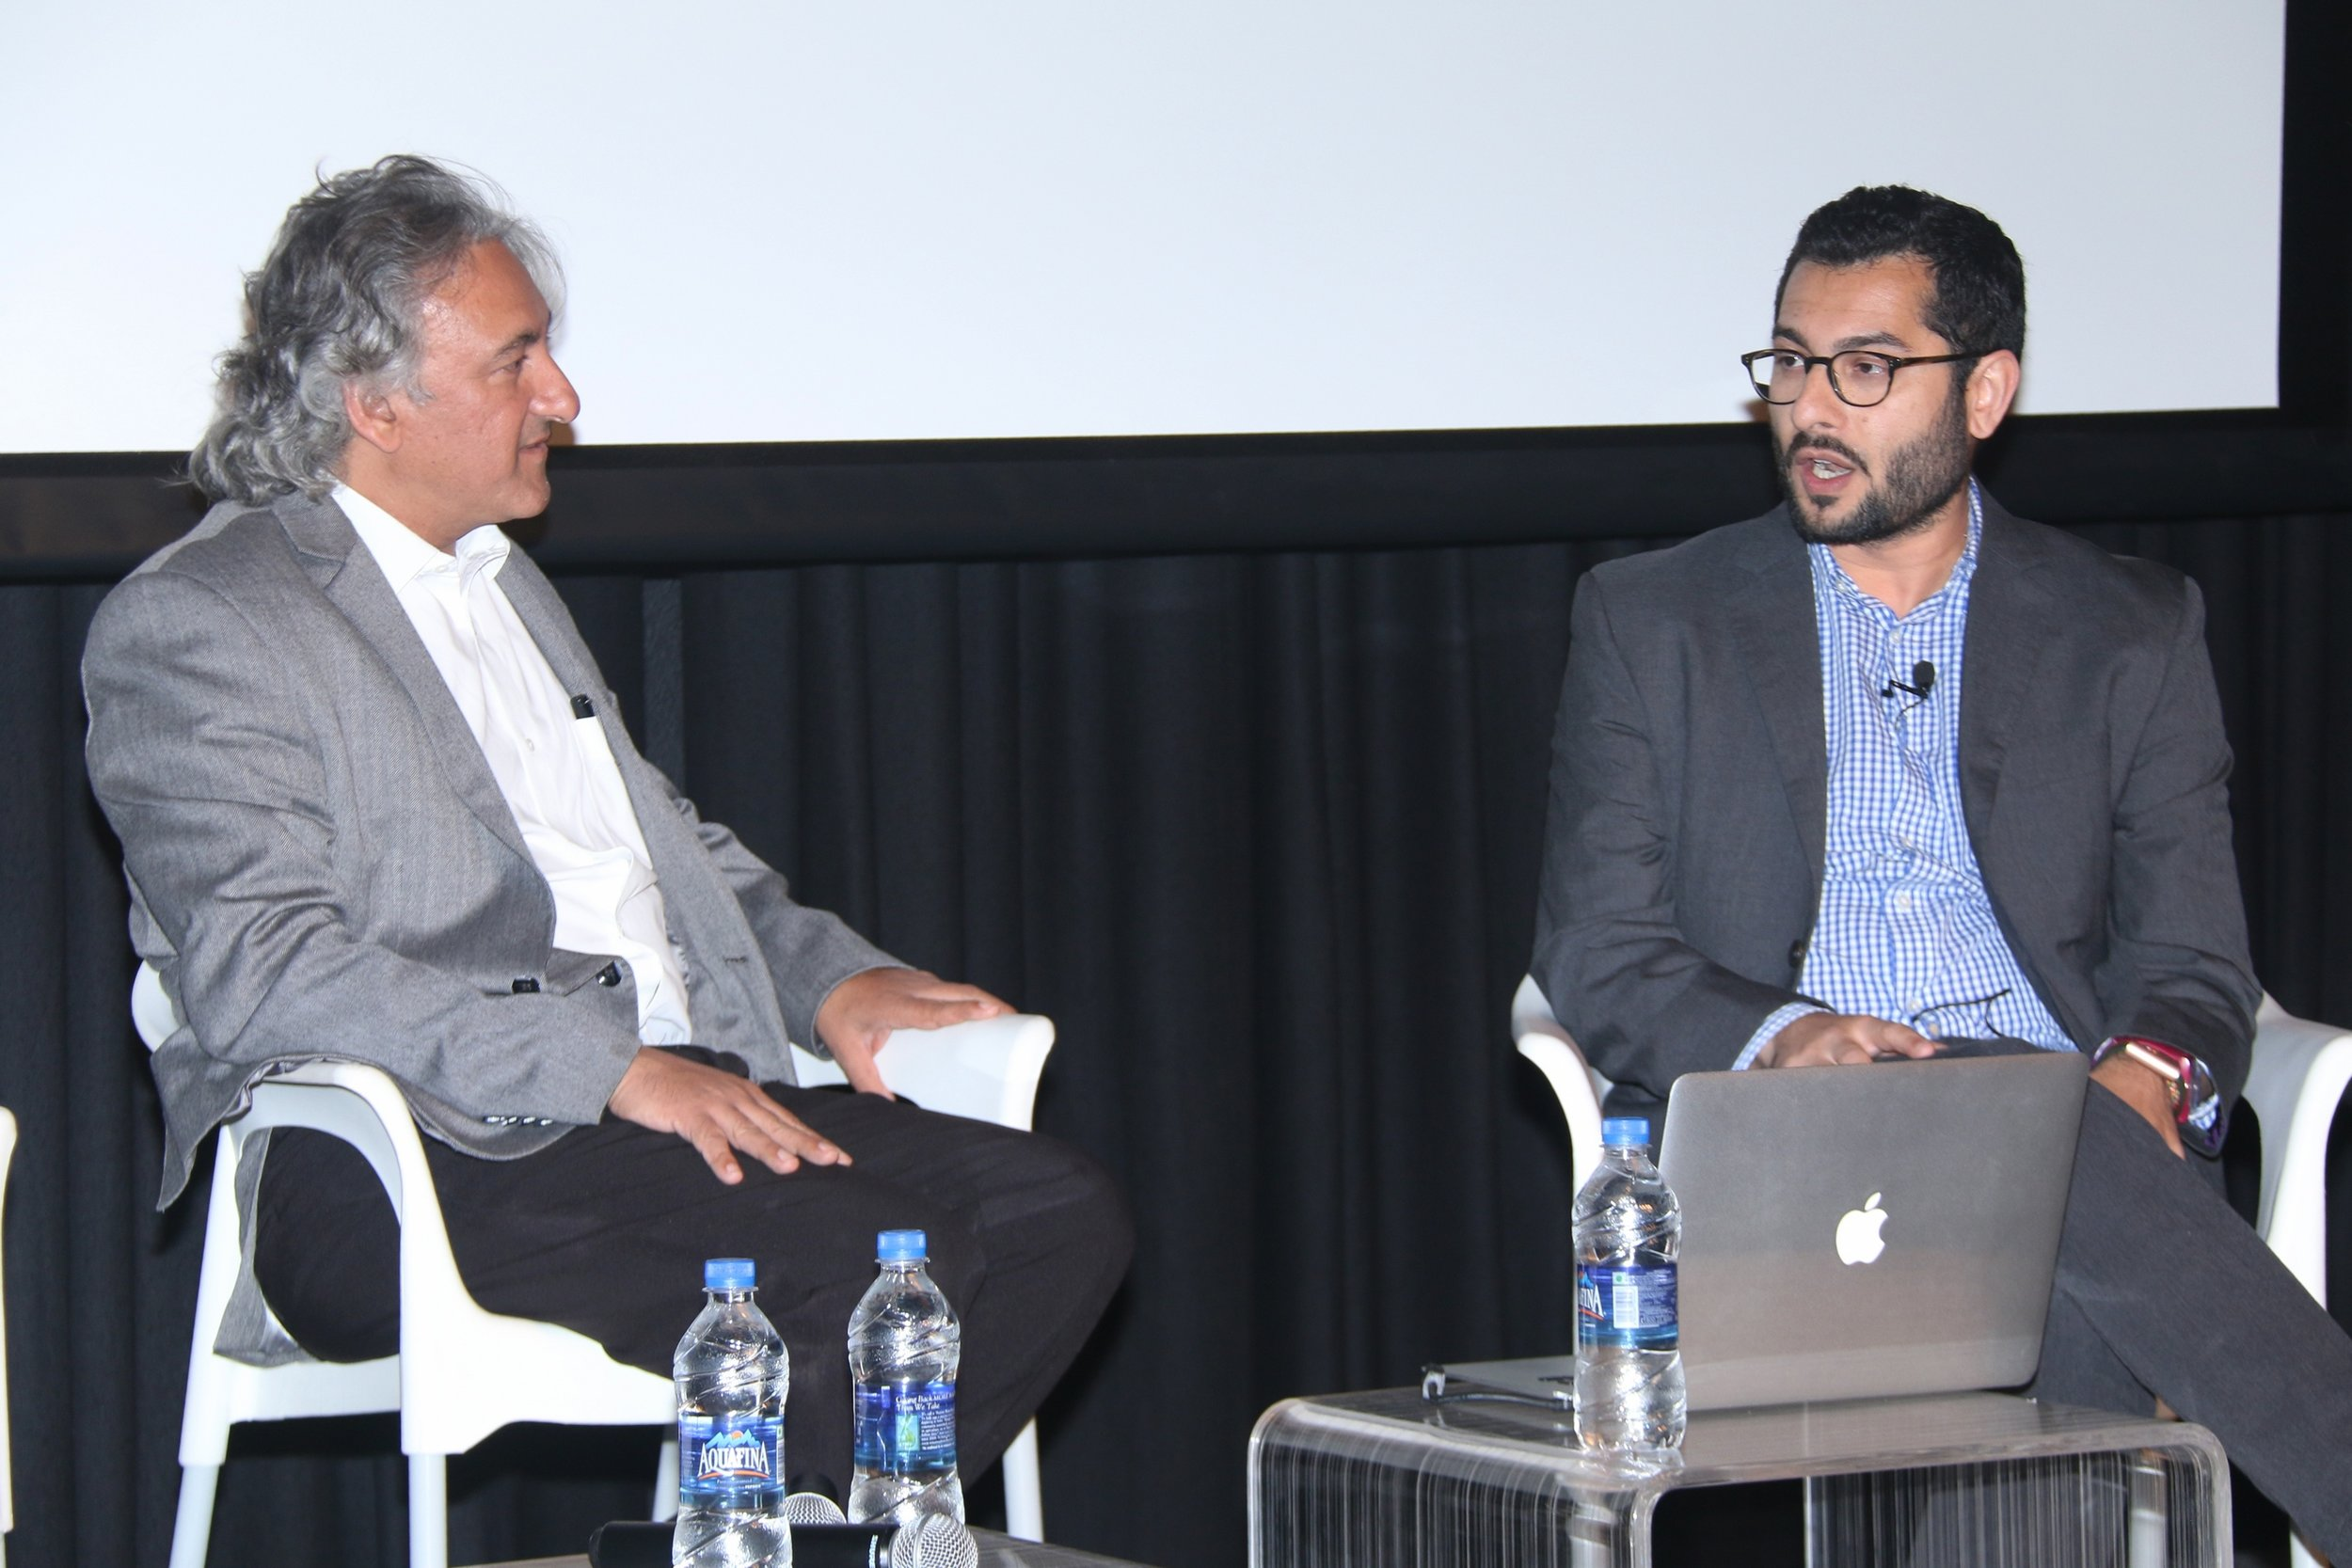 Anupam Sah in conversation with Mortimer Chatterjee.